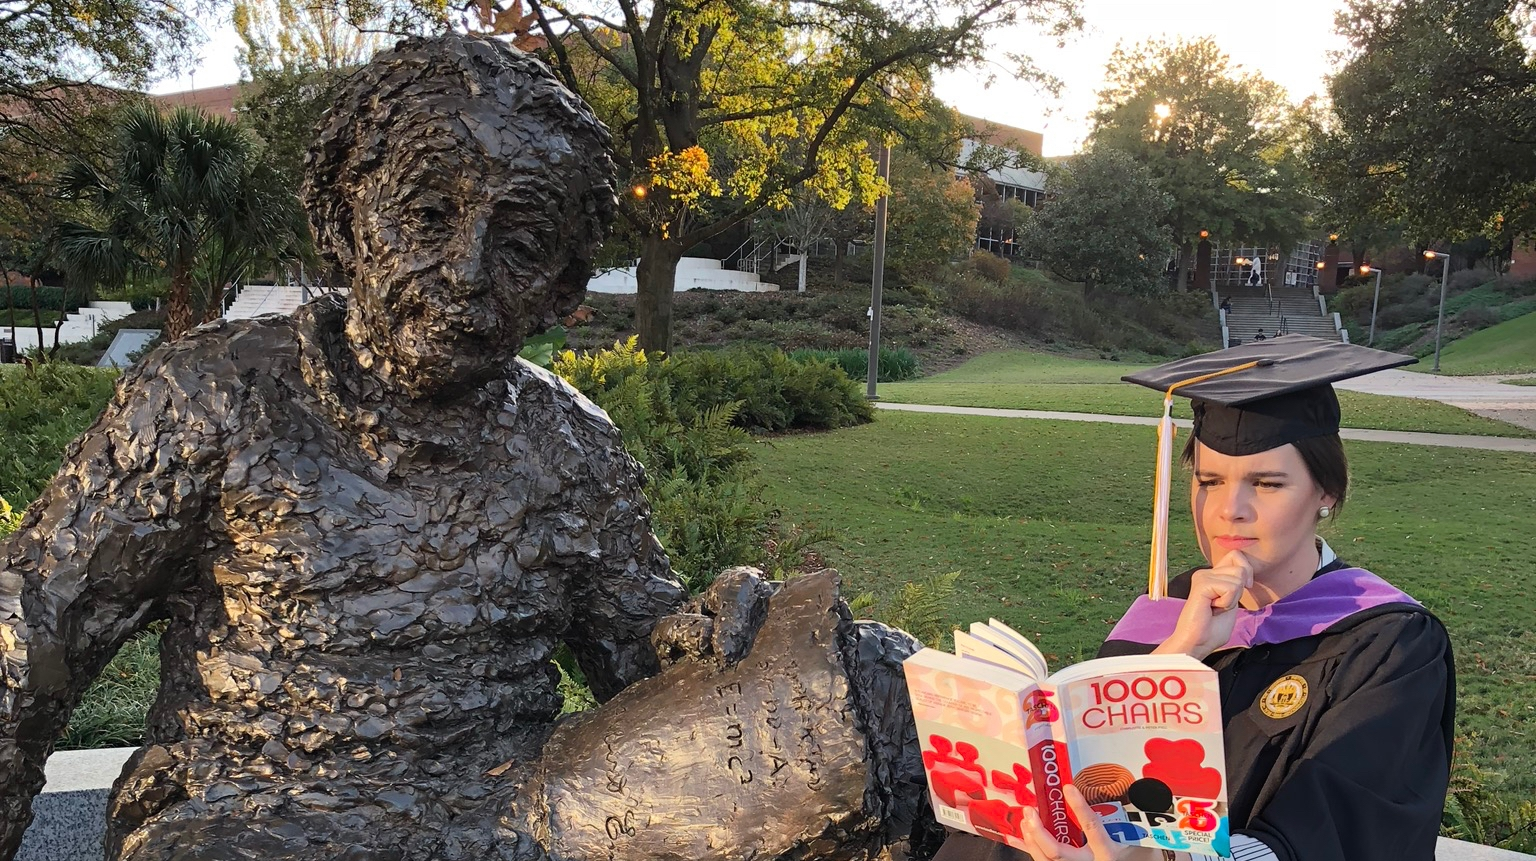 "Mount Holyoke graduate Allie Miller reading ""1000 Chairs"" while sitting next to a statue of Albert Einstein. Miller is dressed in their Masters of Industrial Design graduation regalia."